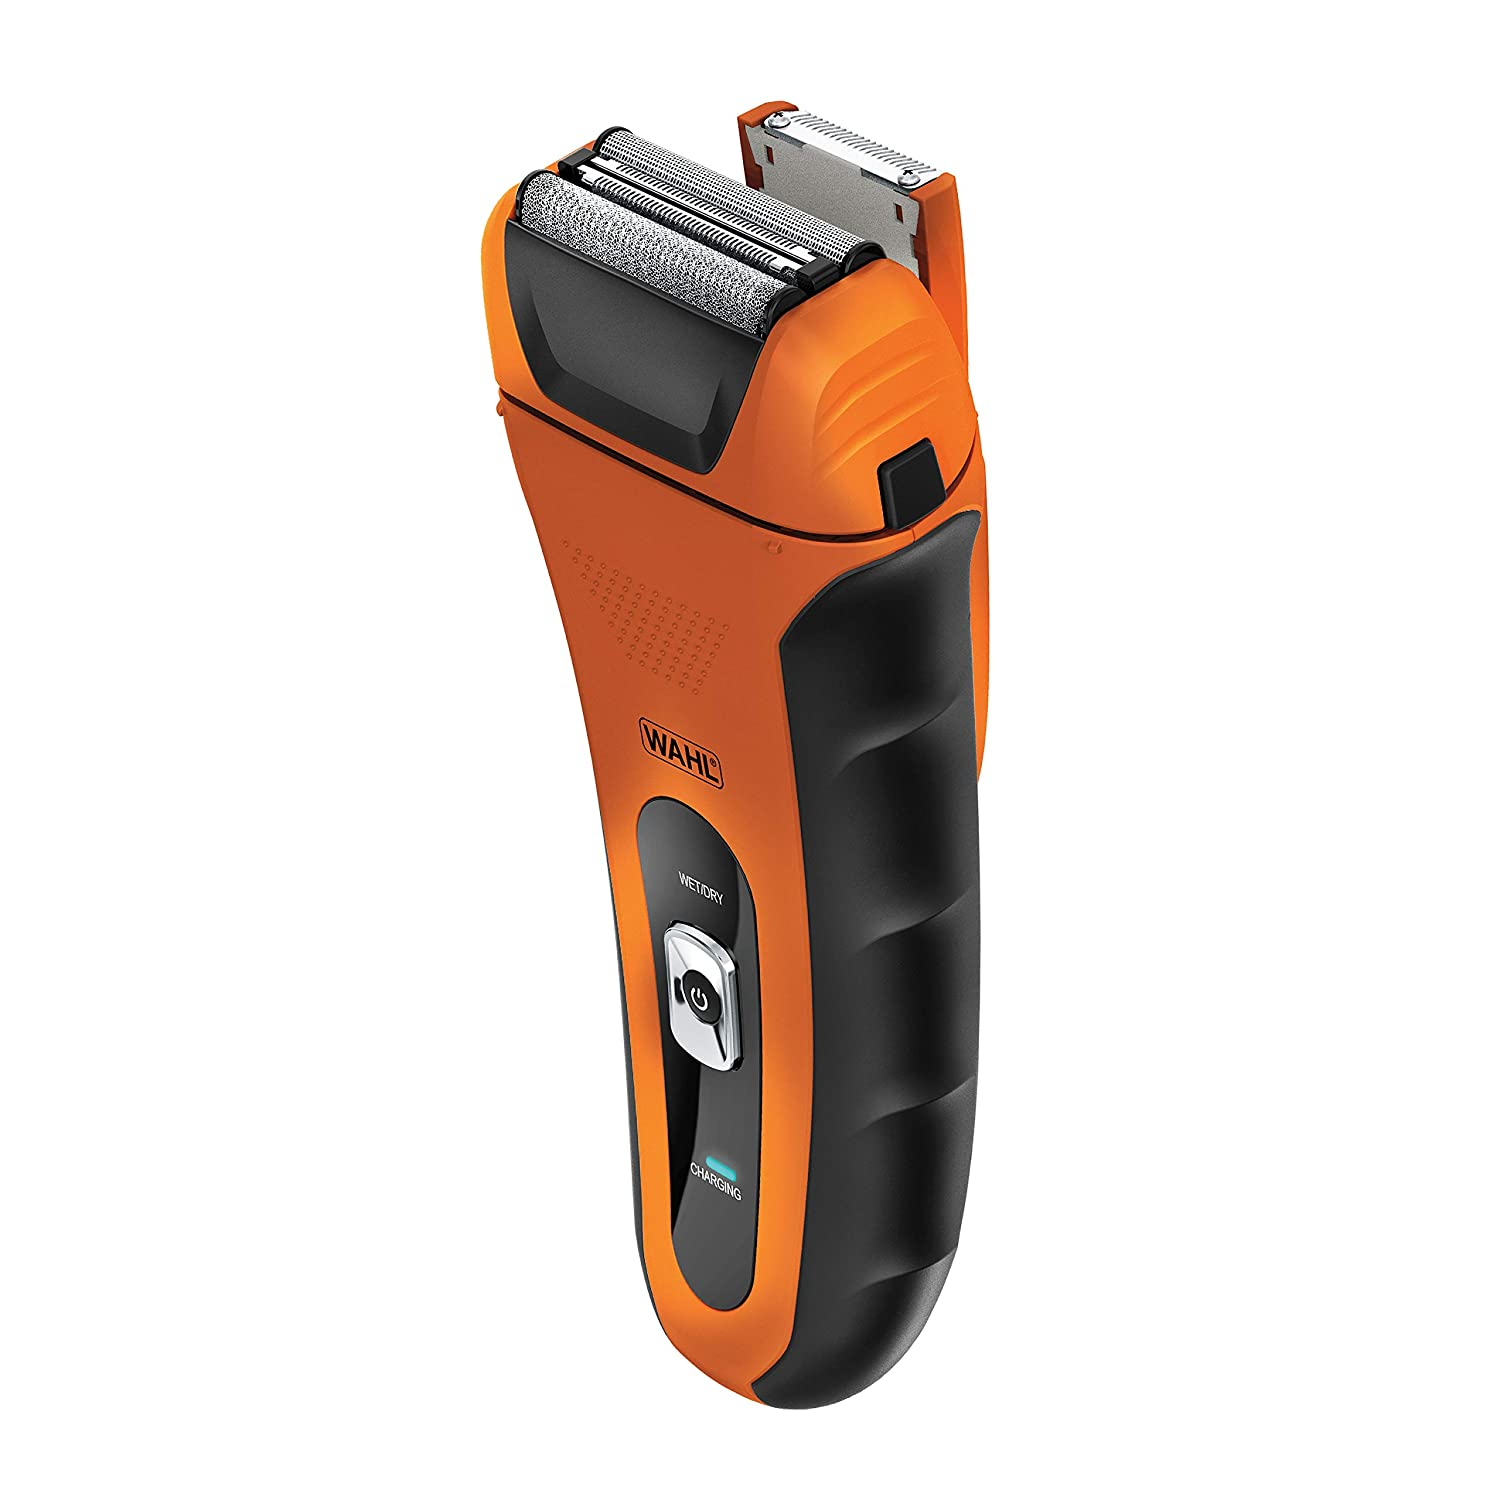 Wahl Lifeproof Lithium Ion Foil Shaver – Waterproof Rechargeable Electric Razor with Precision Trimmer for Men's Beard Shaving & Grooming with Long Run Time & Quick Charge, Orange – Model 7061-2201